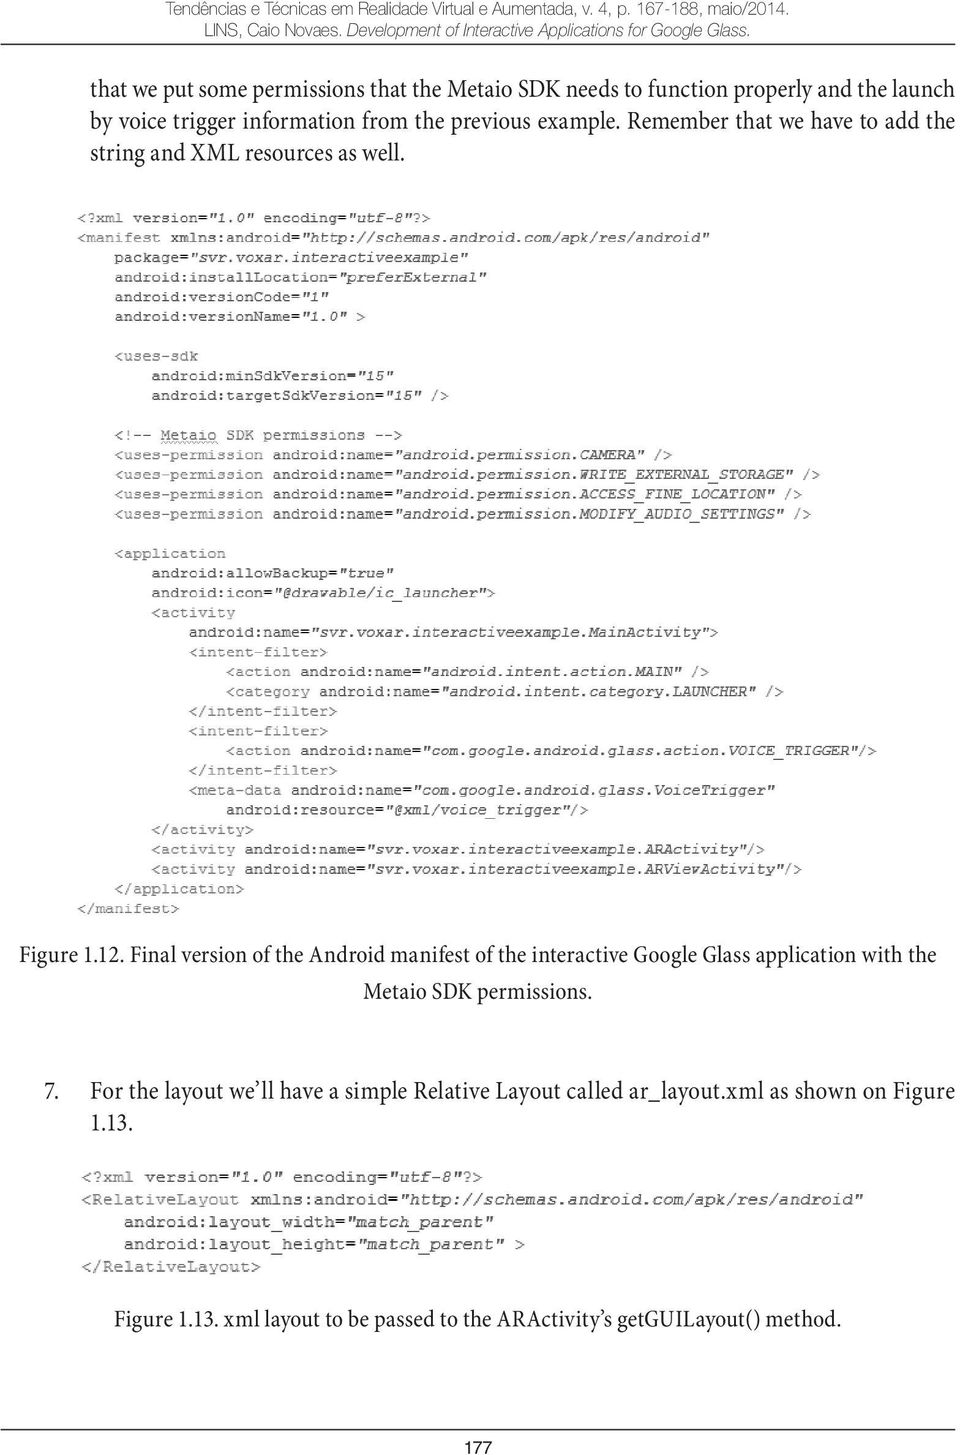 Final version of the Android manifest of the interactive Google Glass application with the Metaio SDK permissions. 7.